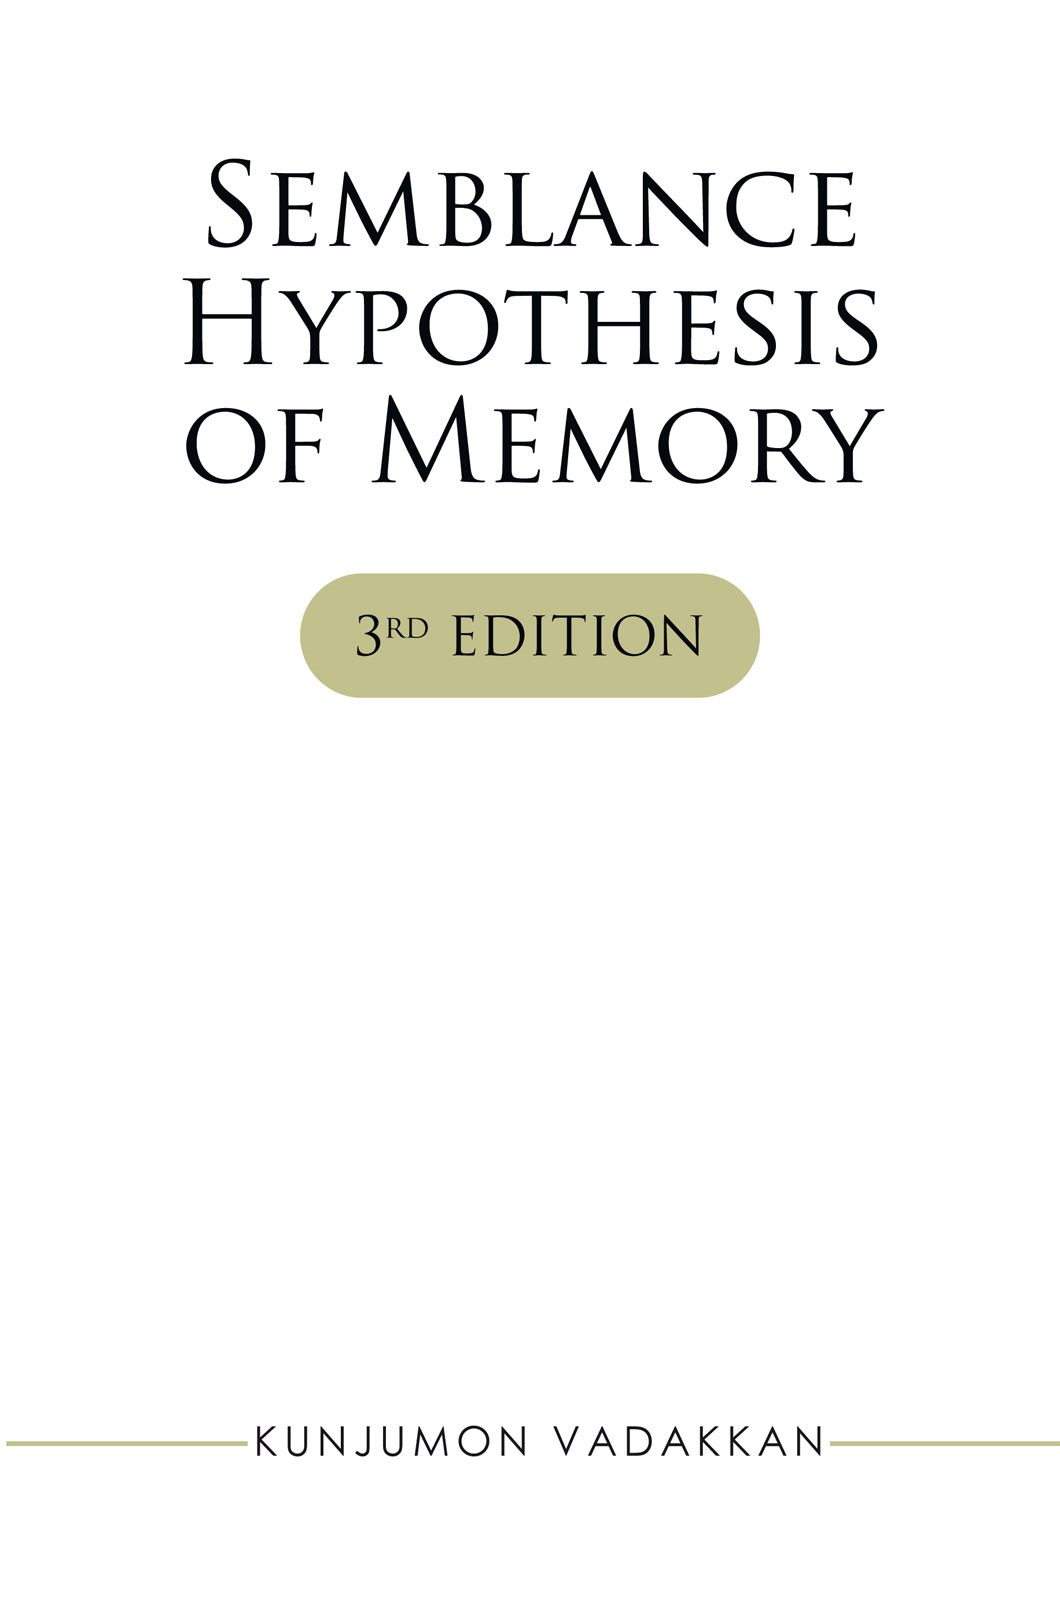 Semblance Hypothesis Of Memory - iUniverse